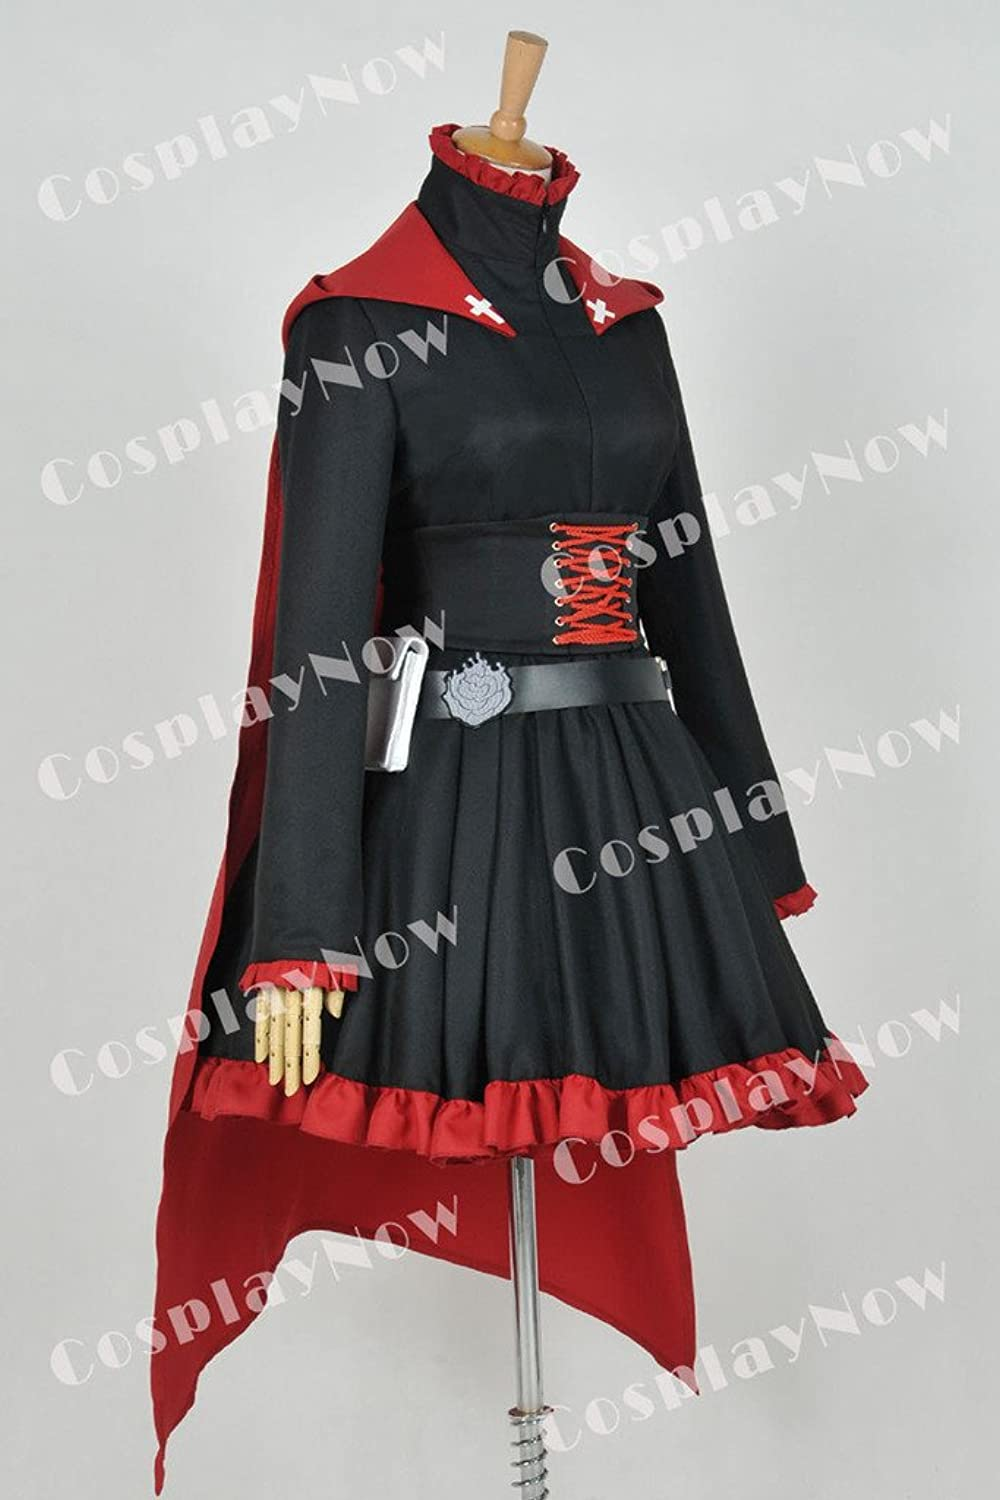 Amazon.com: CosplayNow RWBY Ruby Rose Cosplay Costume Gothic Dress: Clothing